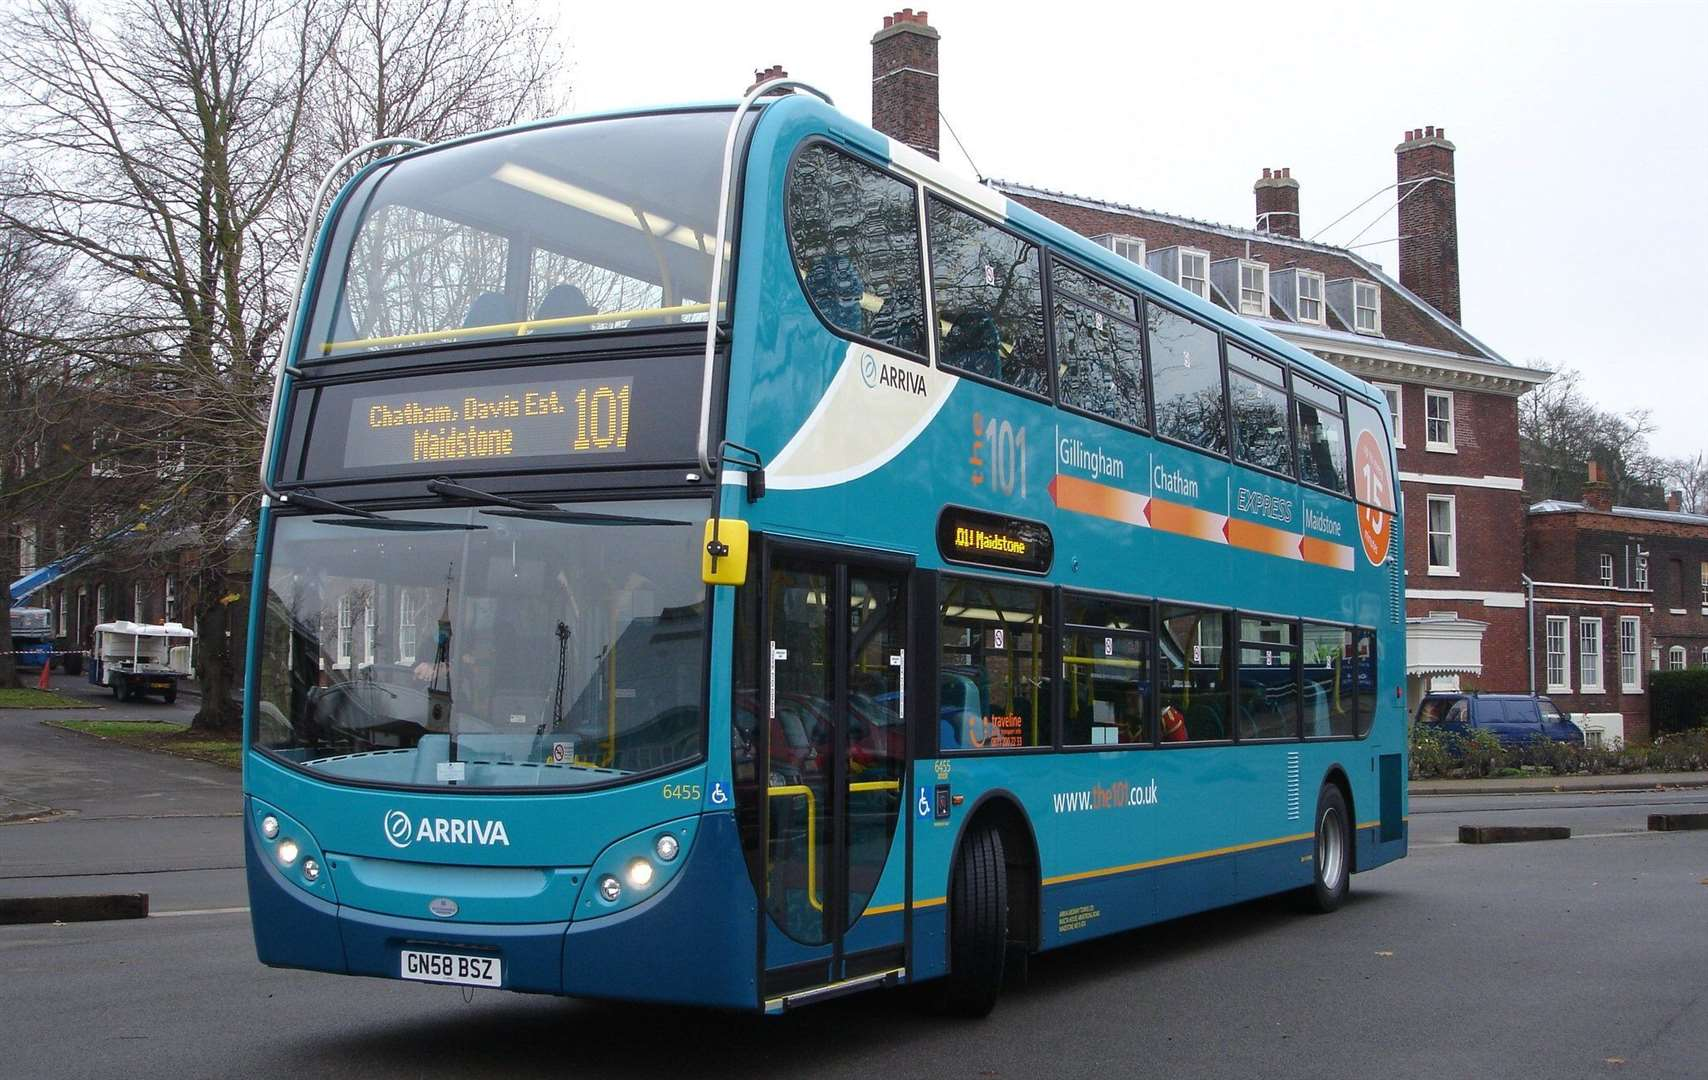 Stock image of an Arriva bus